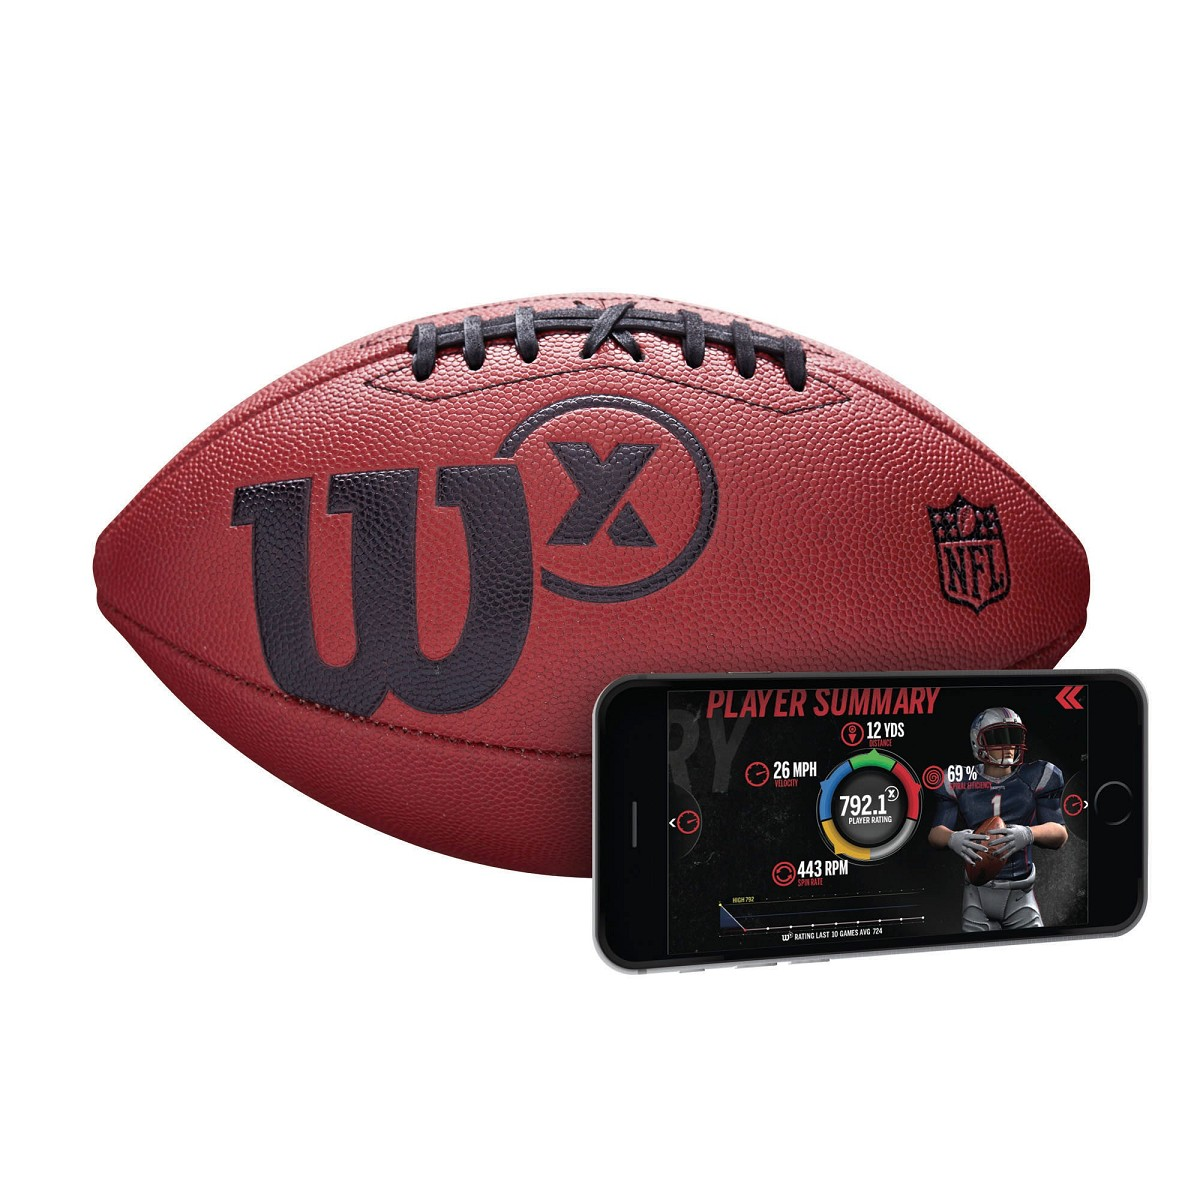 Pallone Wilson Wtf3000id X Connected Ufficiale Cuoio